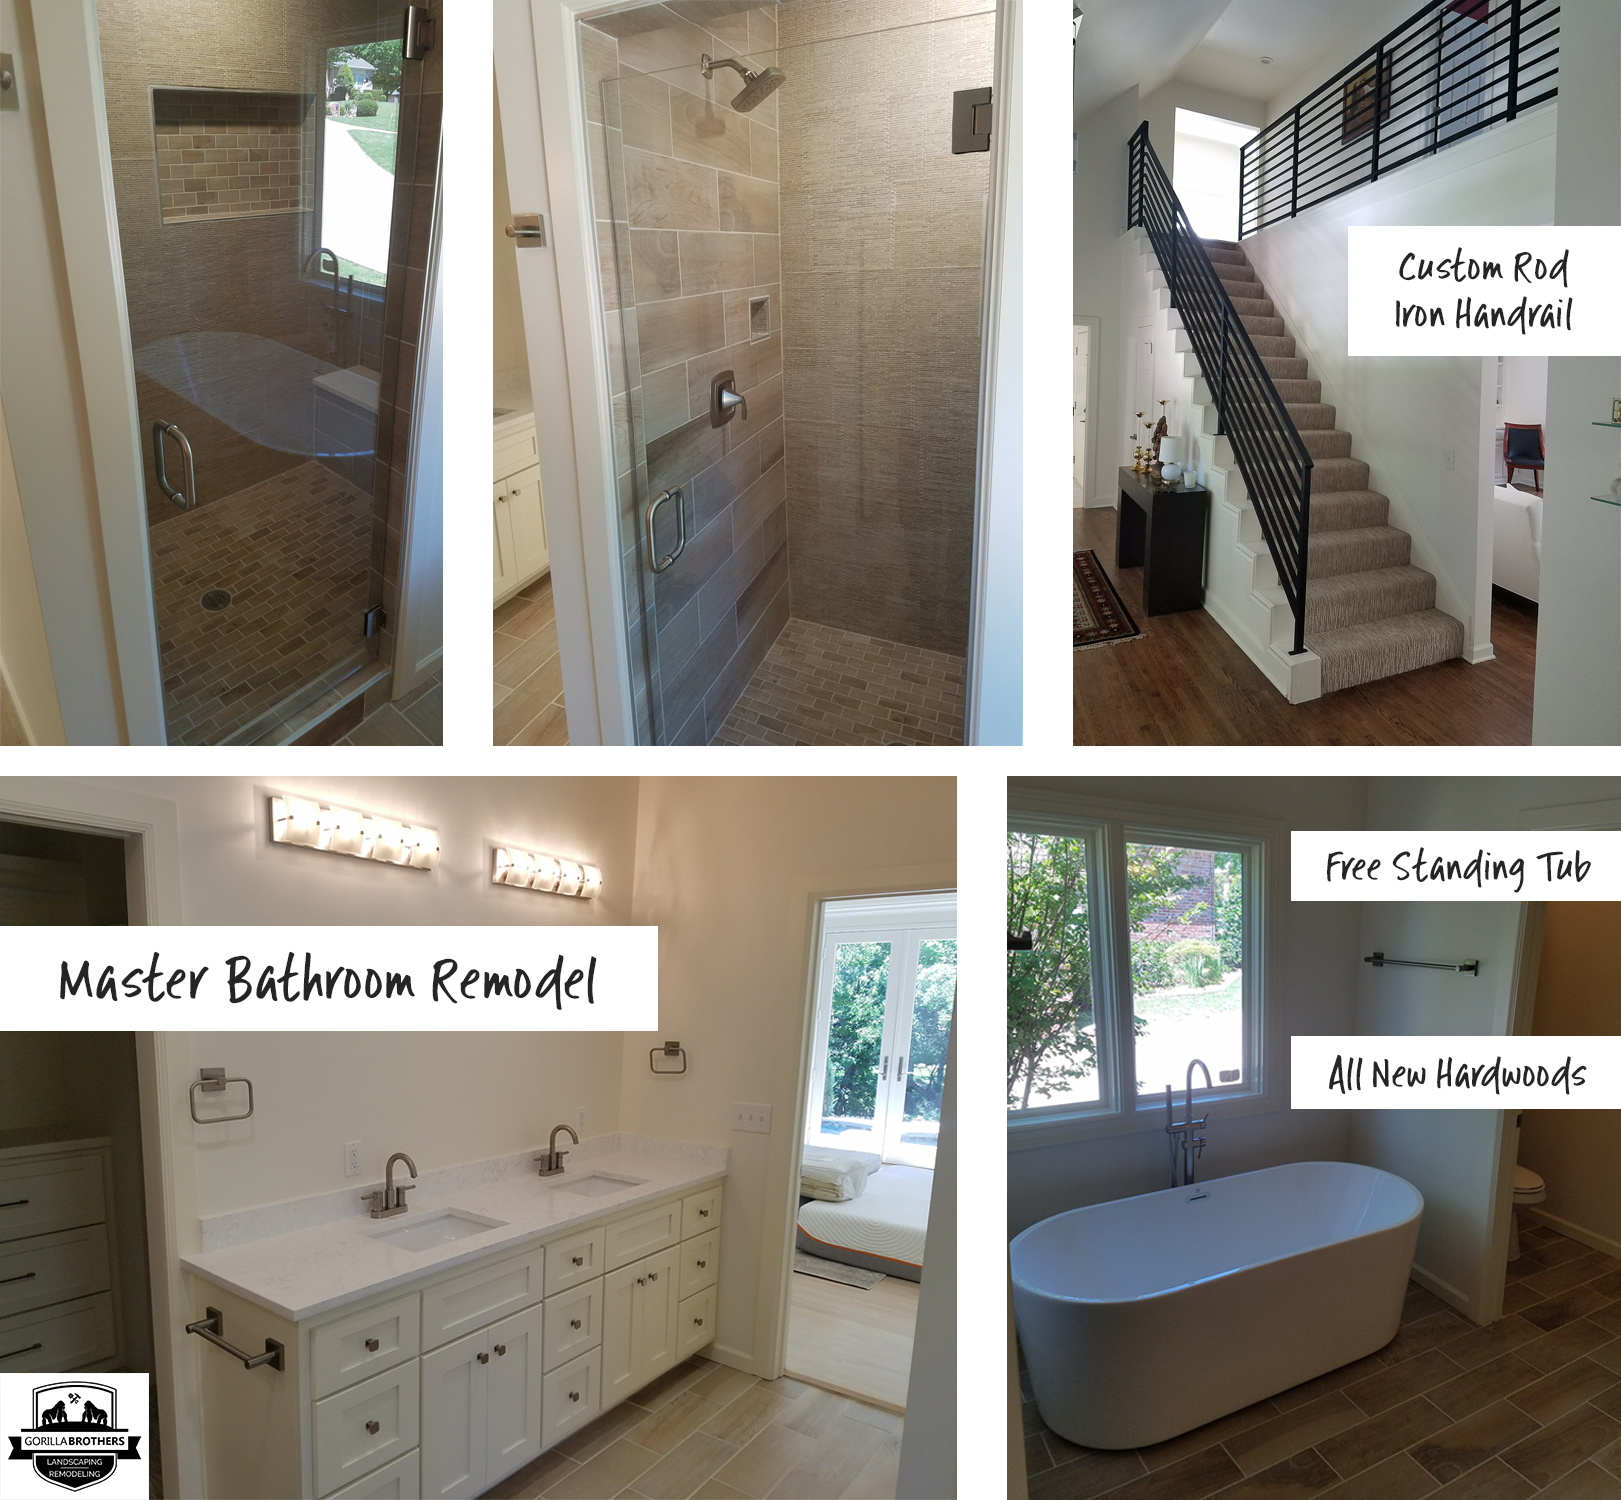 All New Custom Built In Closets. Check Out The Cool Free Standing Tub And  Hardwoods In The Brand New Bathroom. Another Neat Feature Is The Custom Rod  Iron ...